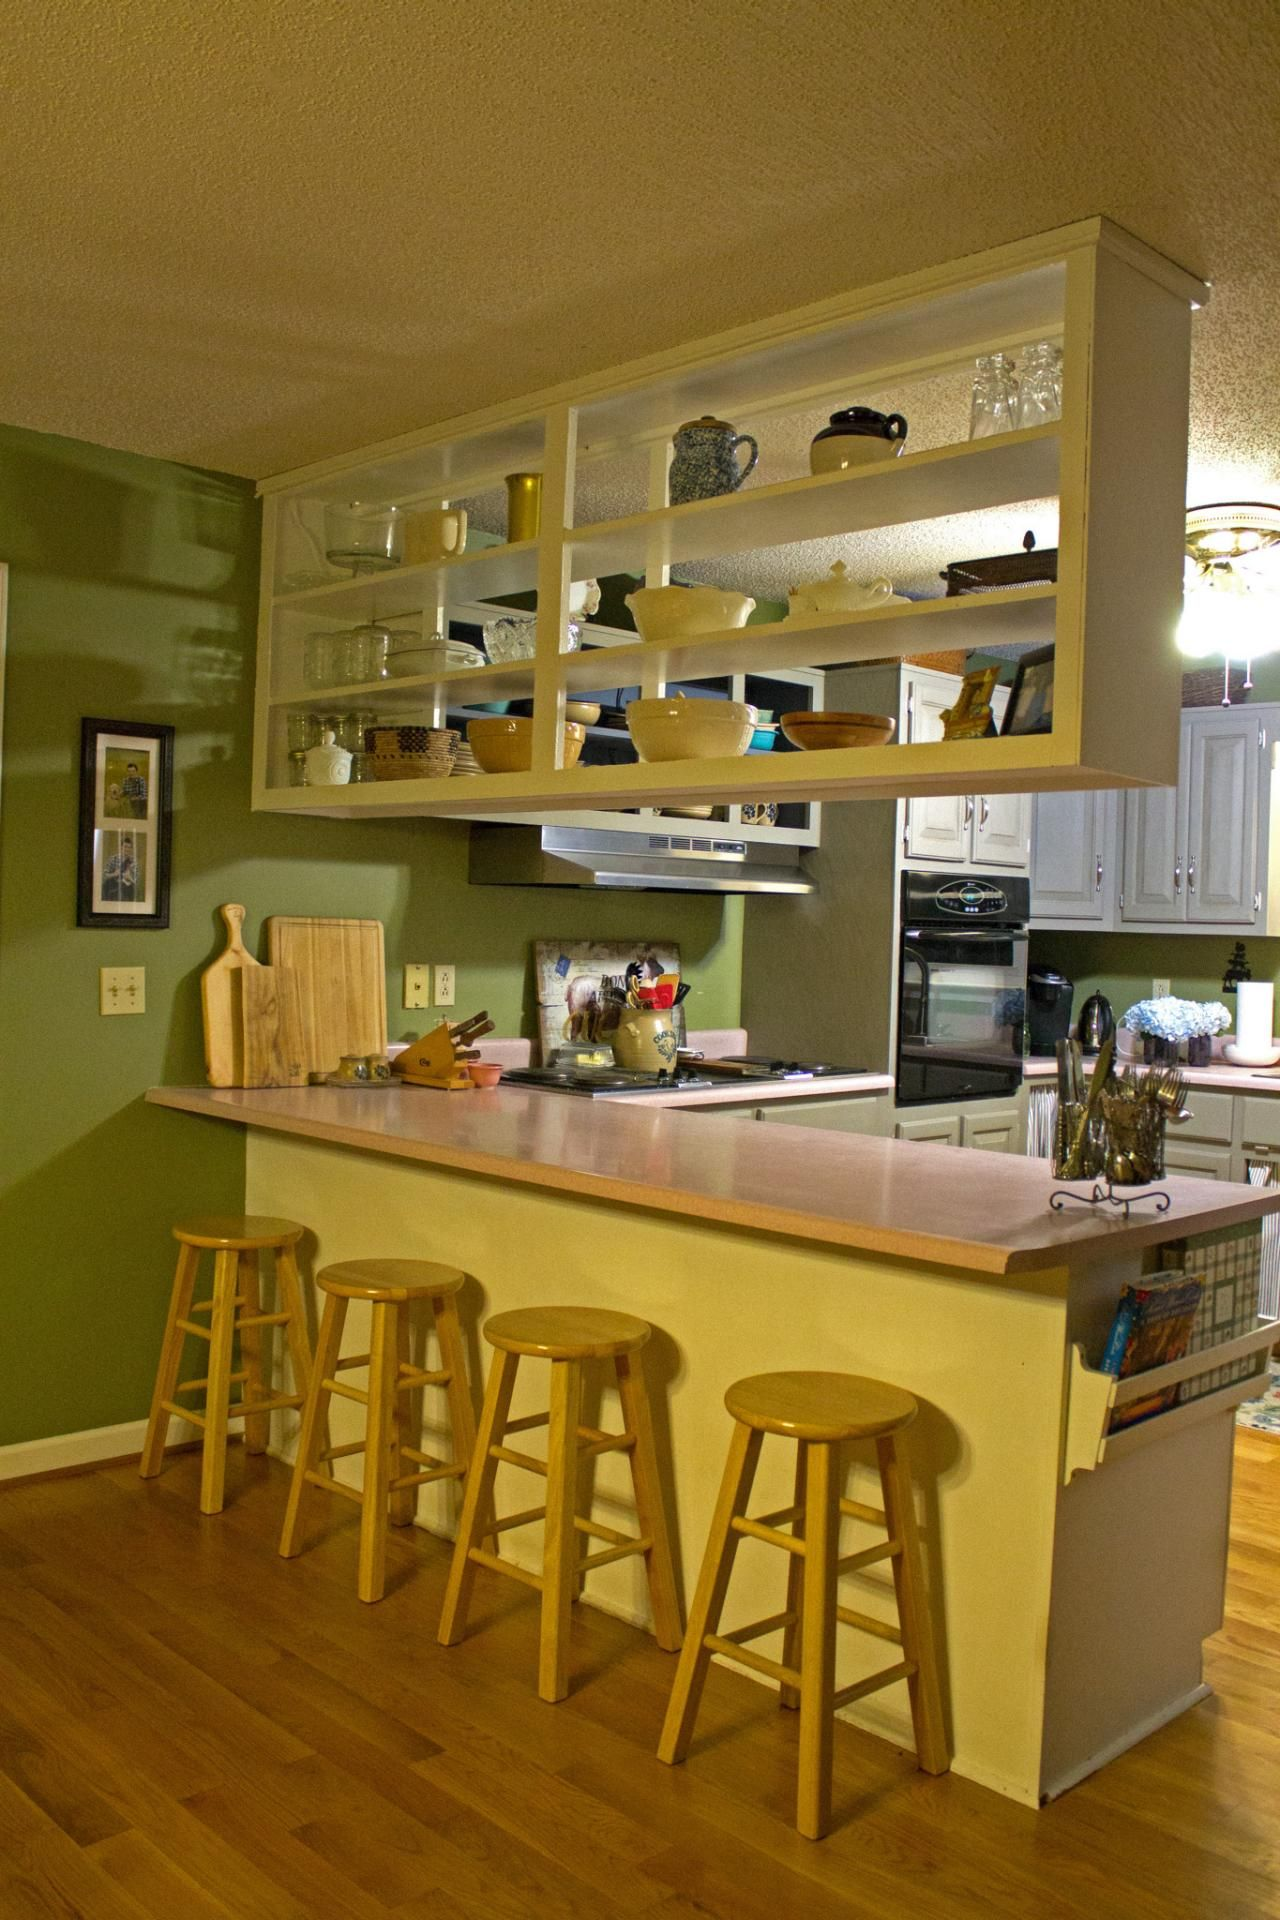 12 easy ways to update kitchen cabinets kitchen ideas design with cabinets islands b on kitchen ideas simple id=51518